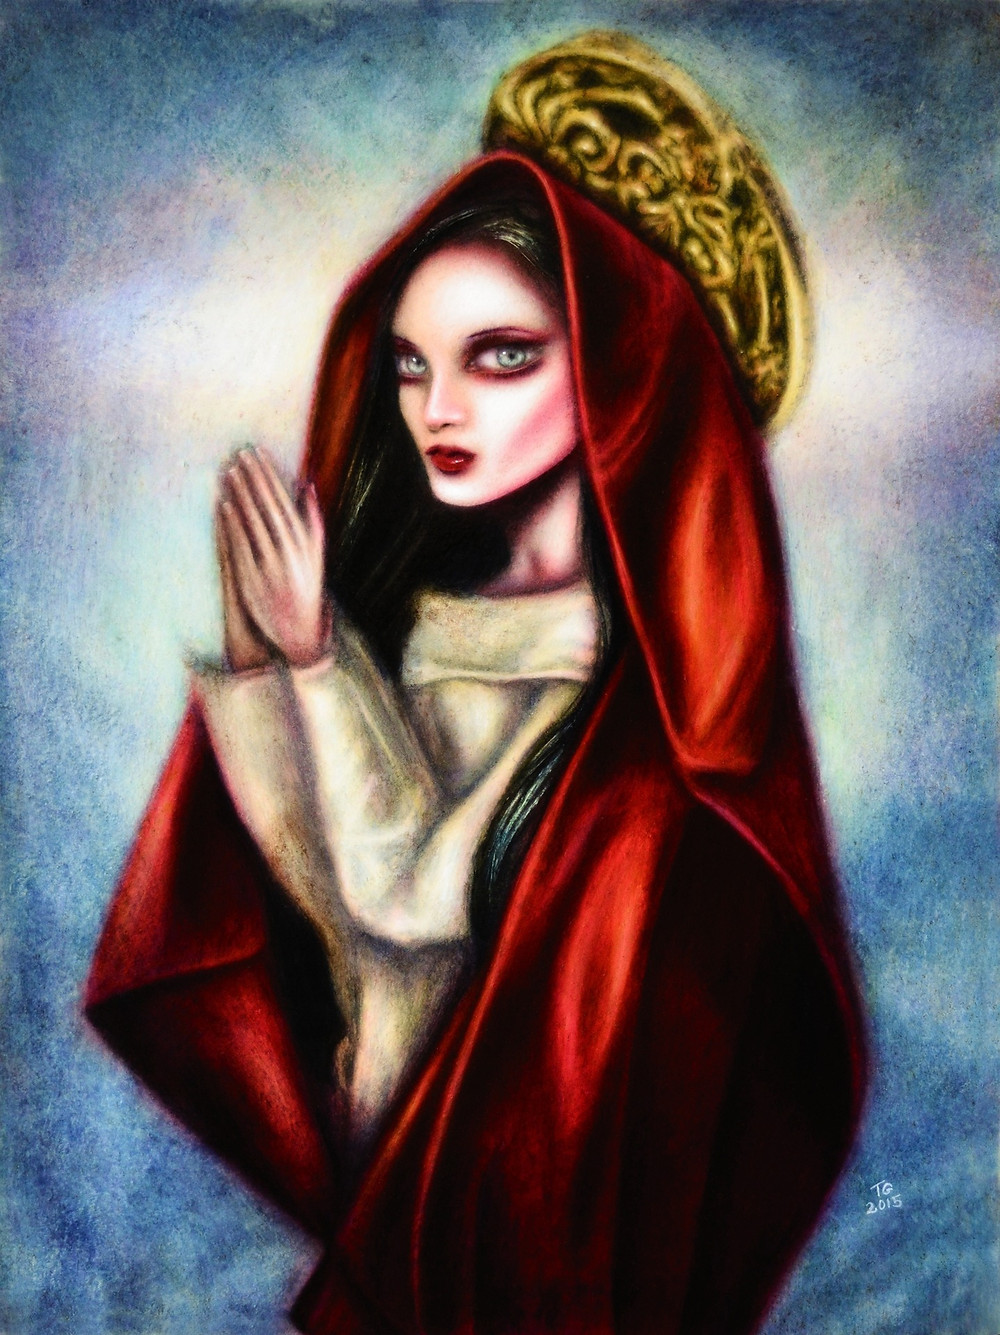 painting of a praying virgin mary with a red mantle and a blue background by tiago azevedo a lowbrow pop surrealism artist